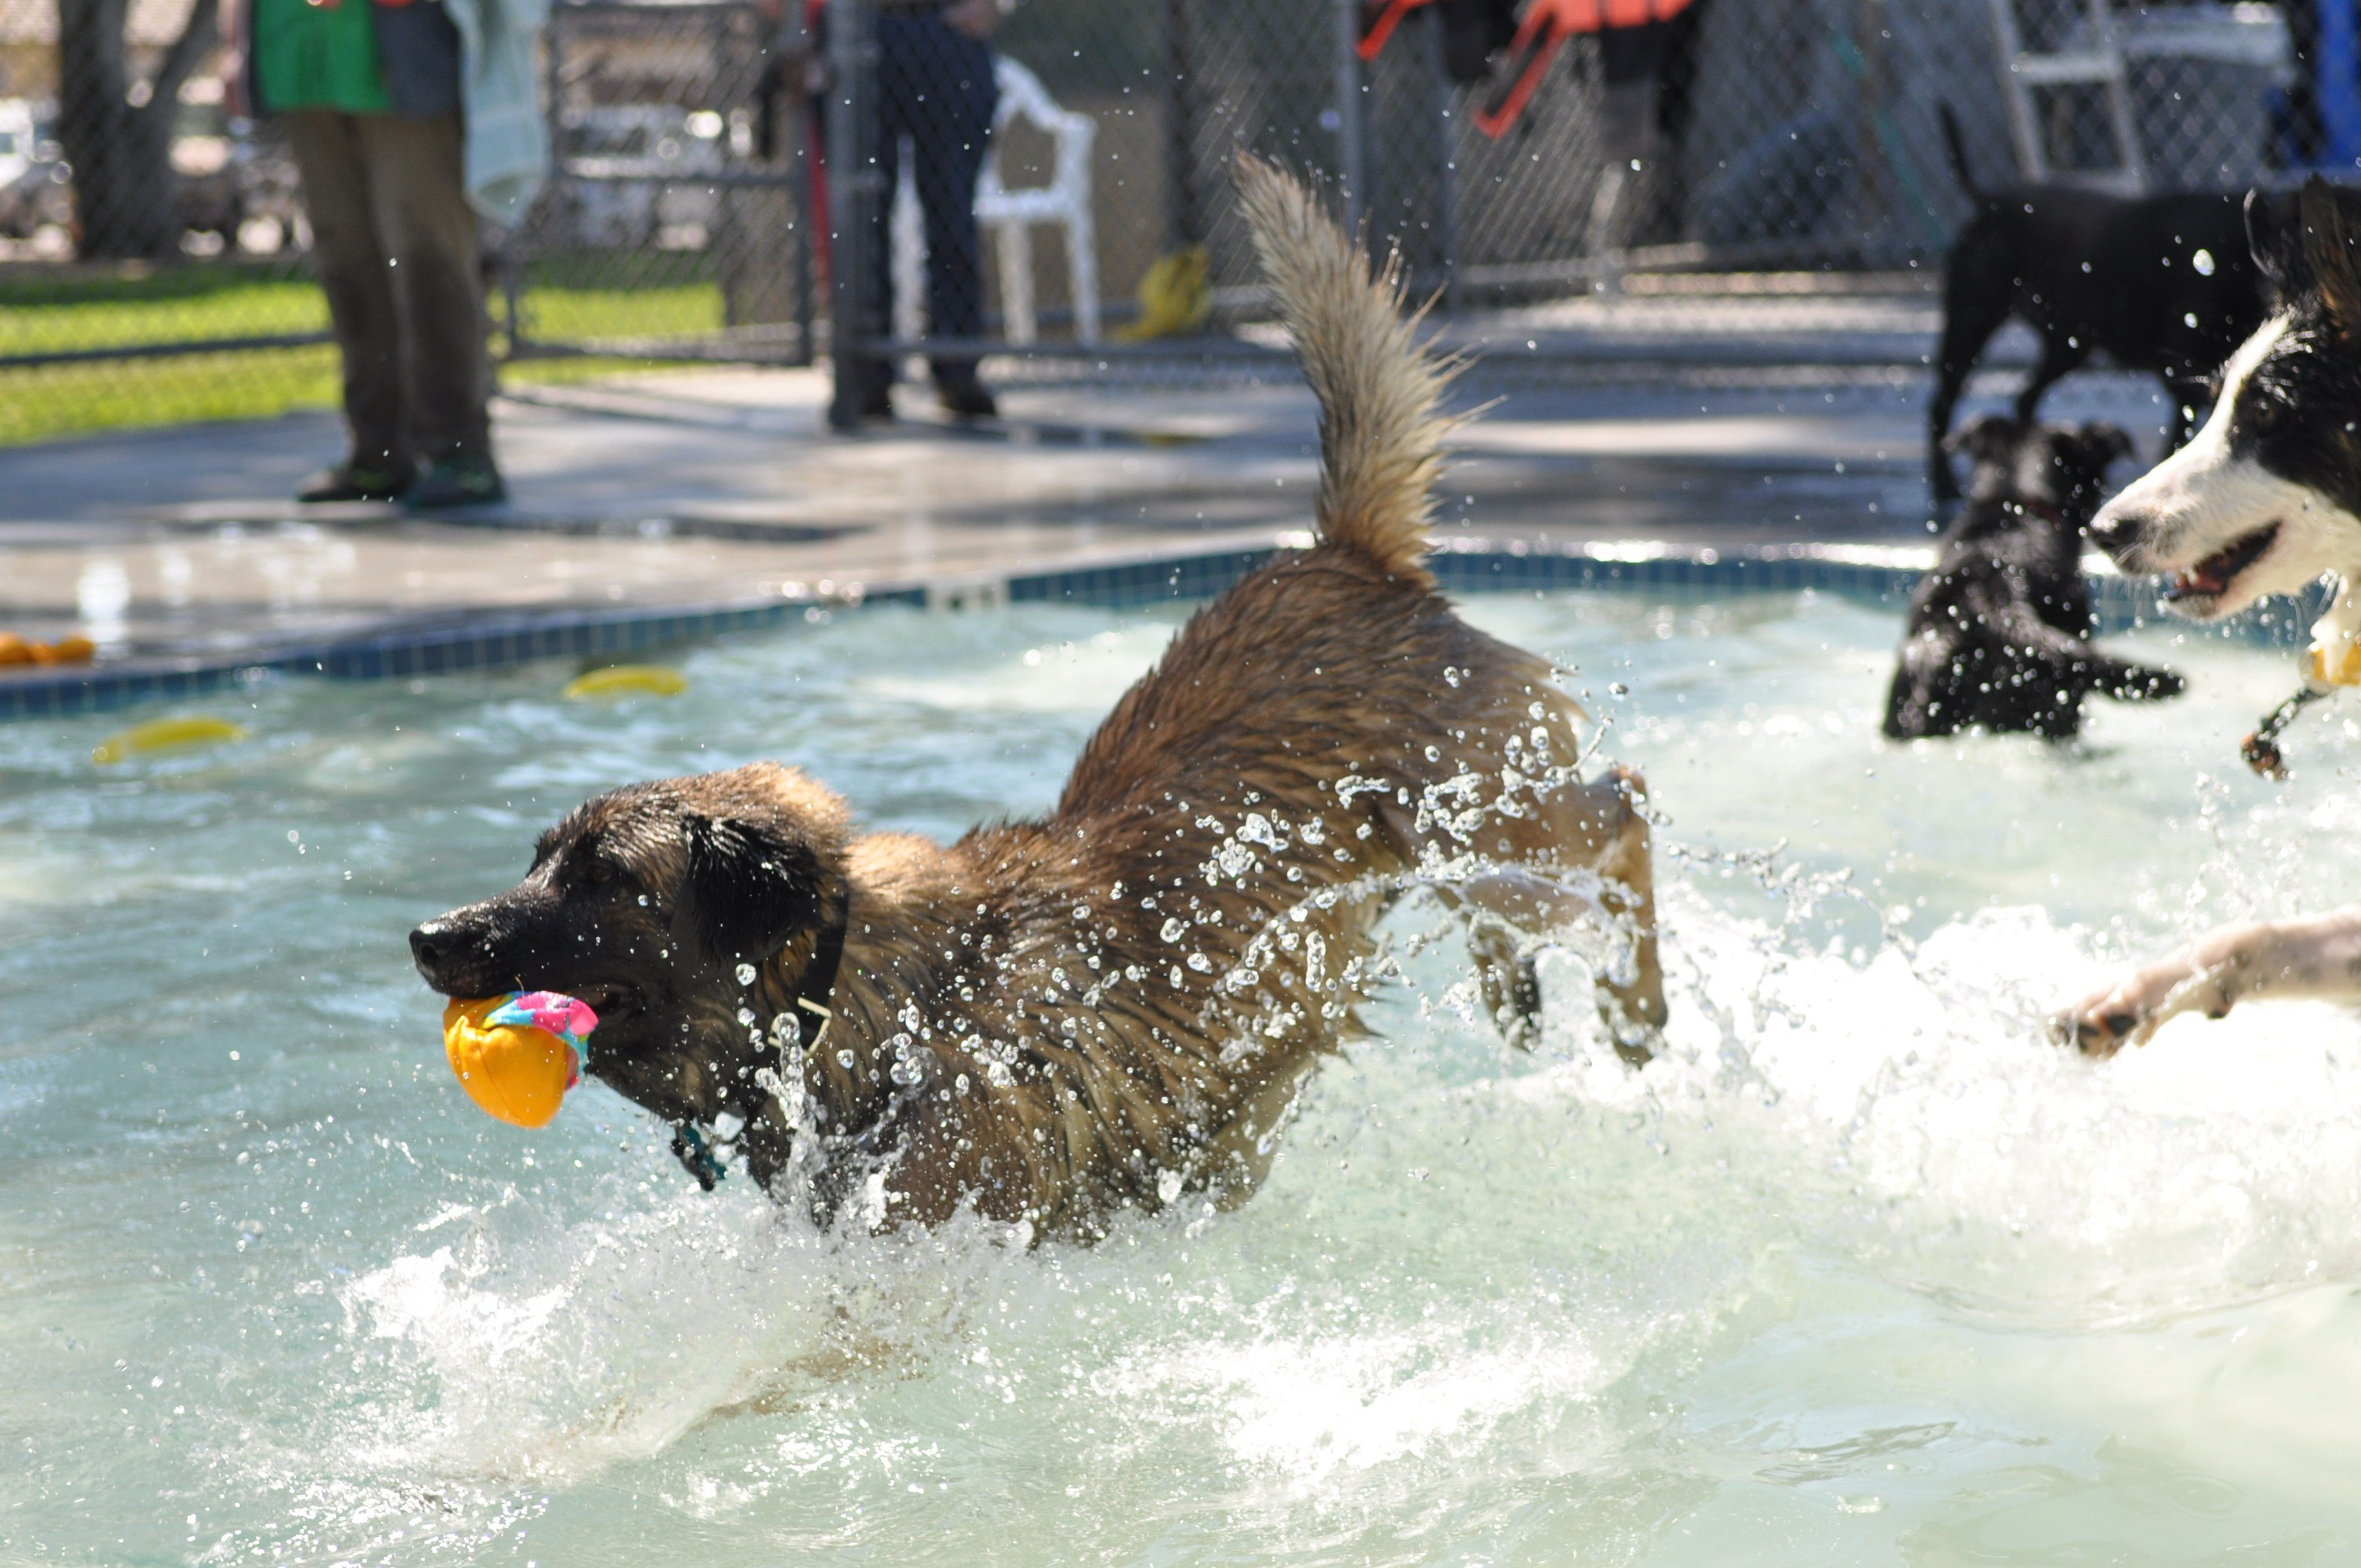 Dogs play in the pool during Dog Splash Days in Templeton. (Photo courtesy Jillian Parks)